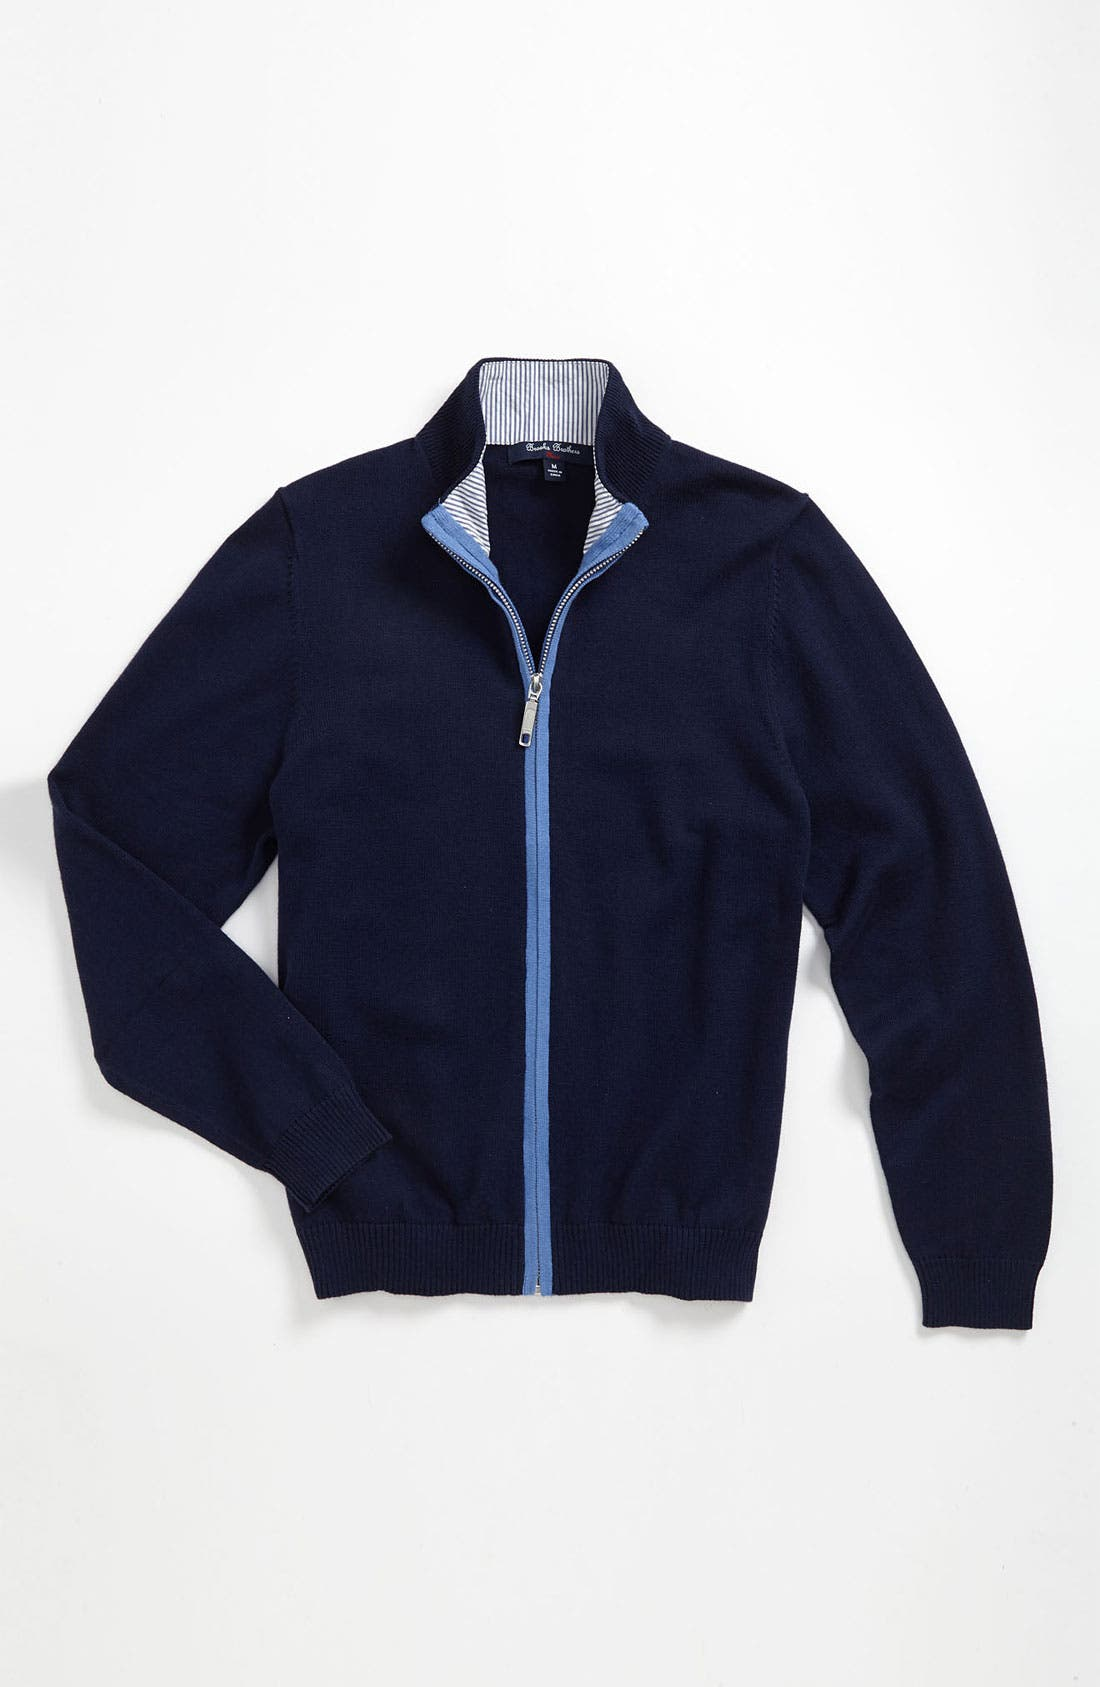 Main Image - Brooks Brothers 'Anchor' Full Zip Sweater (Big Boys)